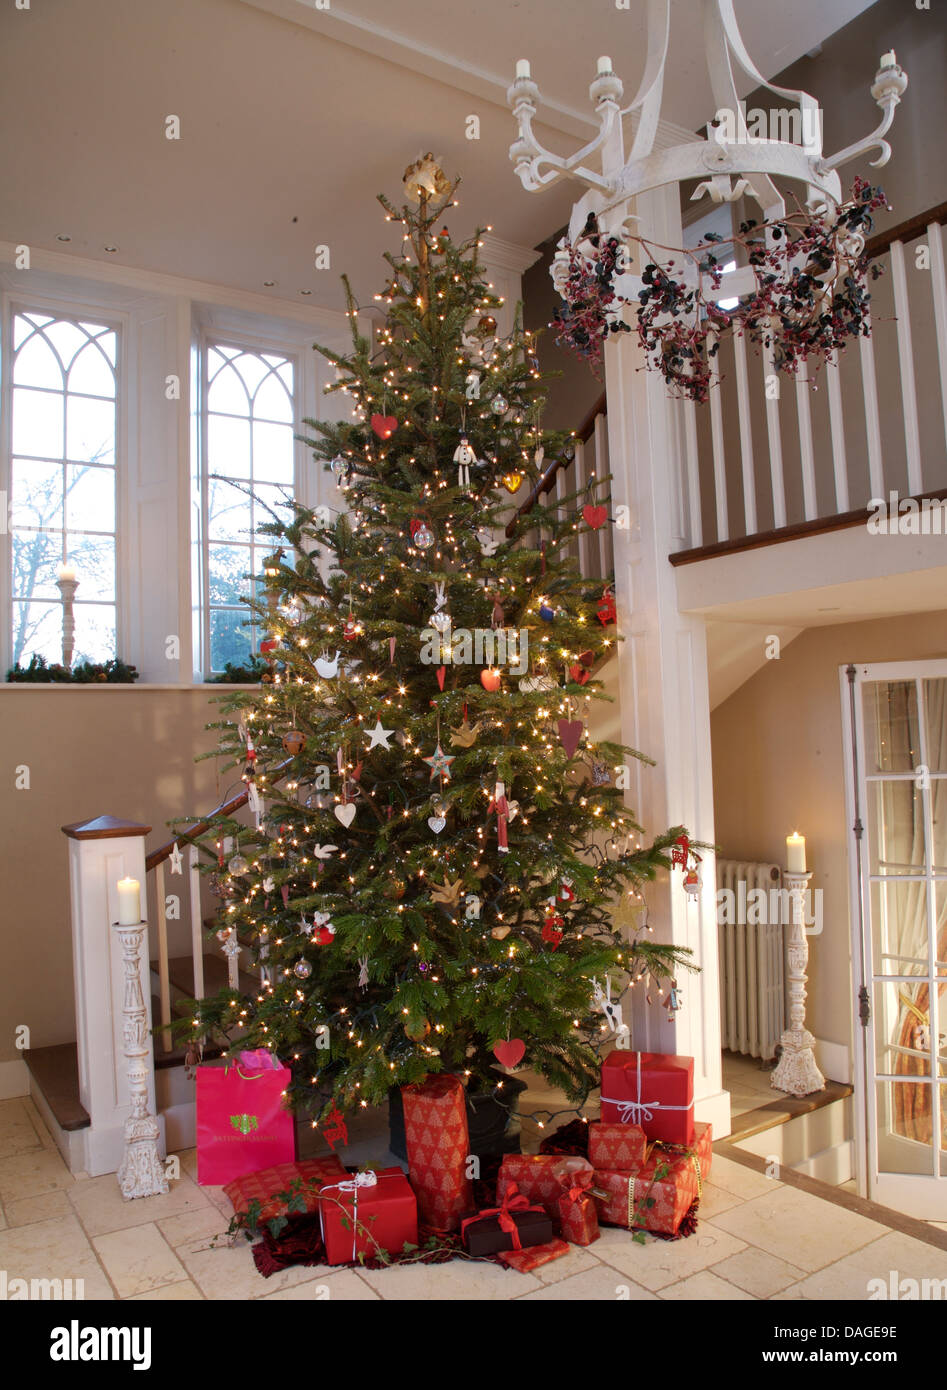 Gift Wrapped Presents In Bright Red Paper Below Tall Decorated Christmas Tree In Country Hall With White Metal Chandelier